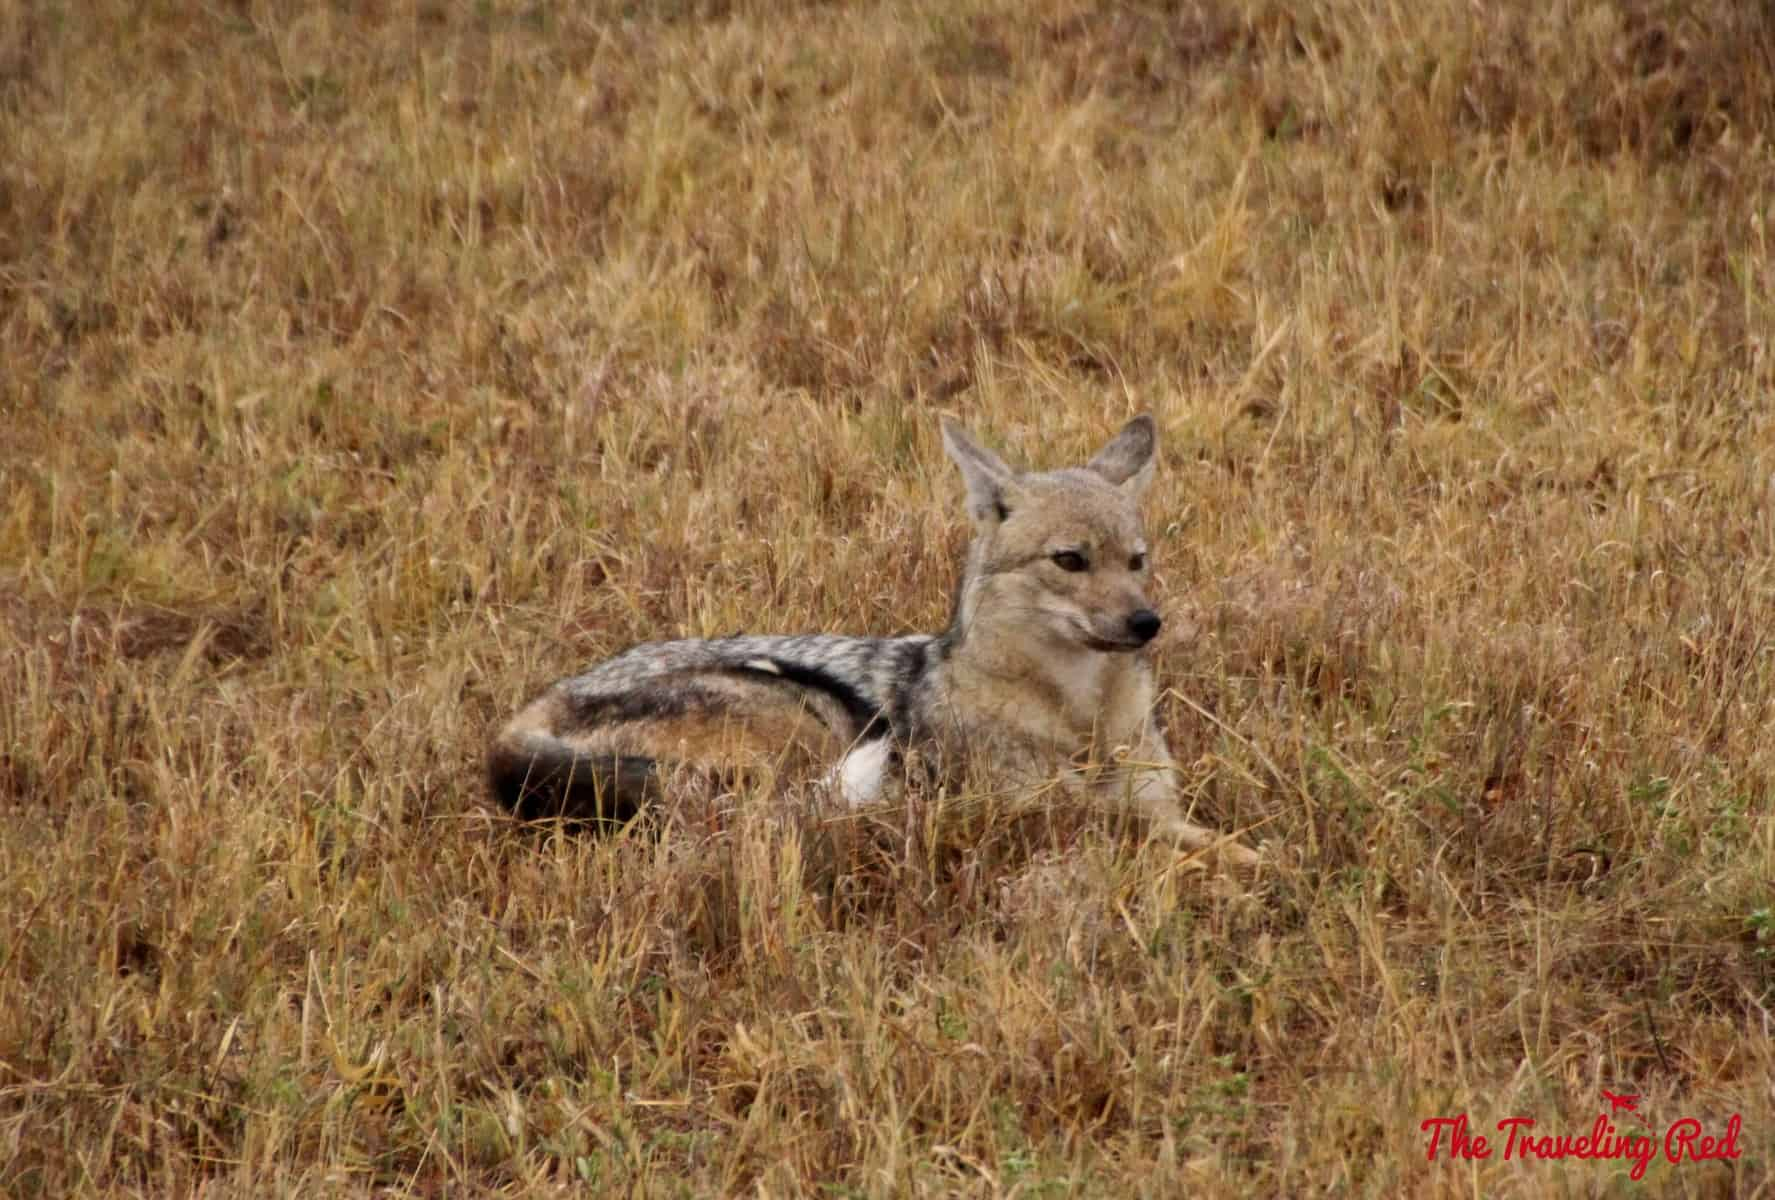 A fox in South Africa